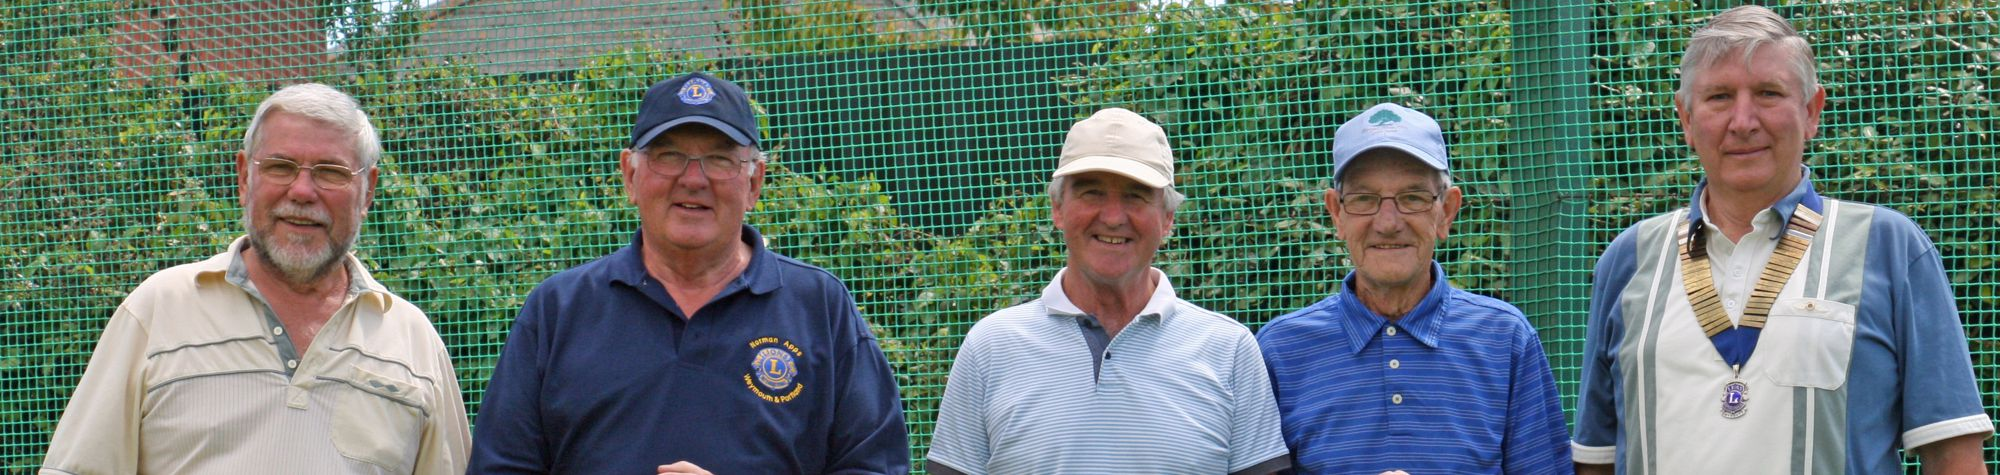 Lions Club Charity Golf Day Raises £1,800